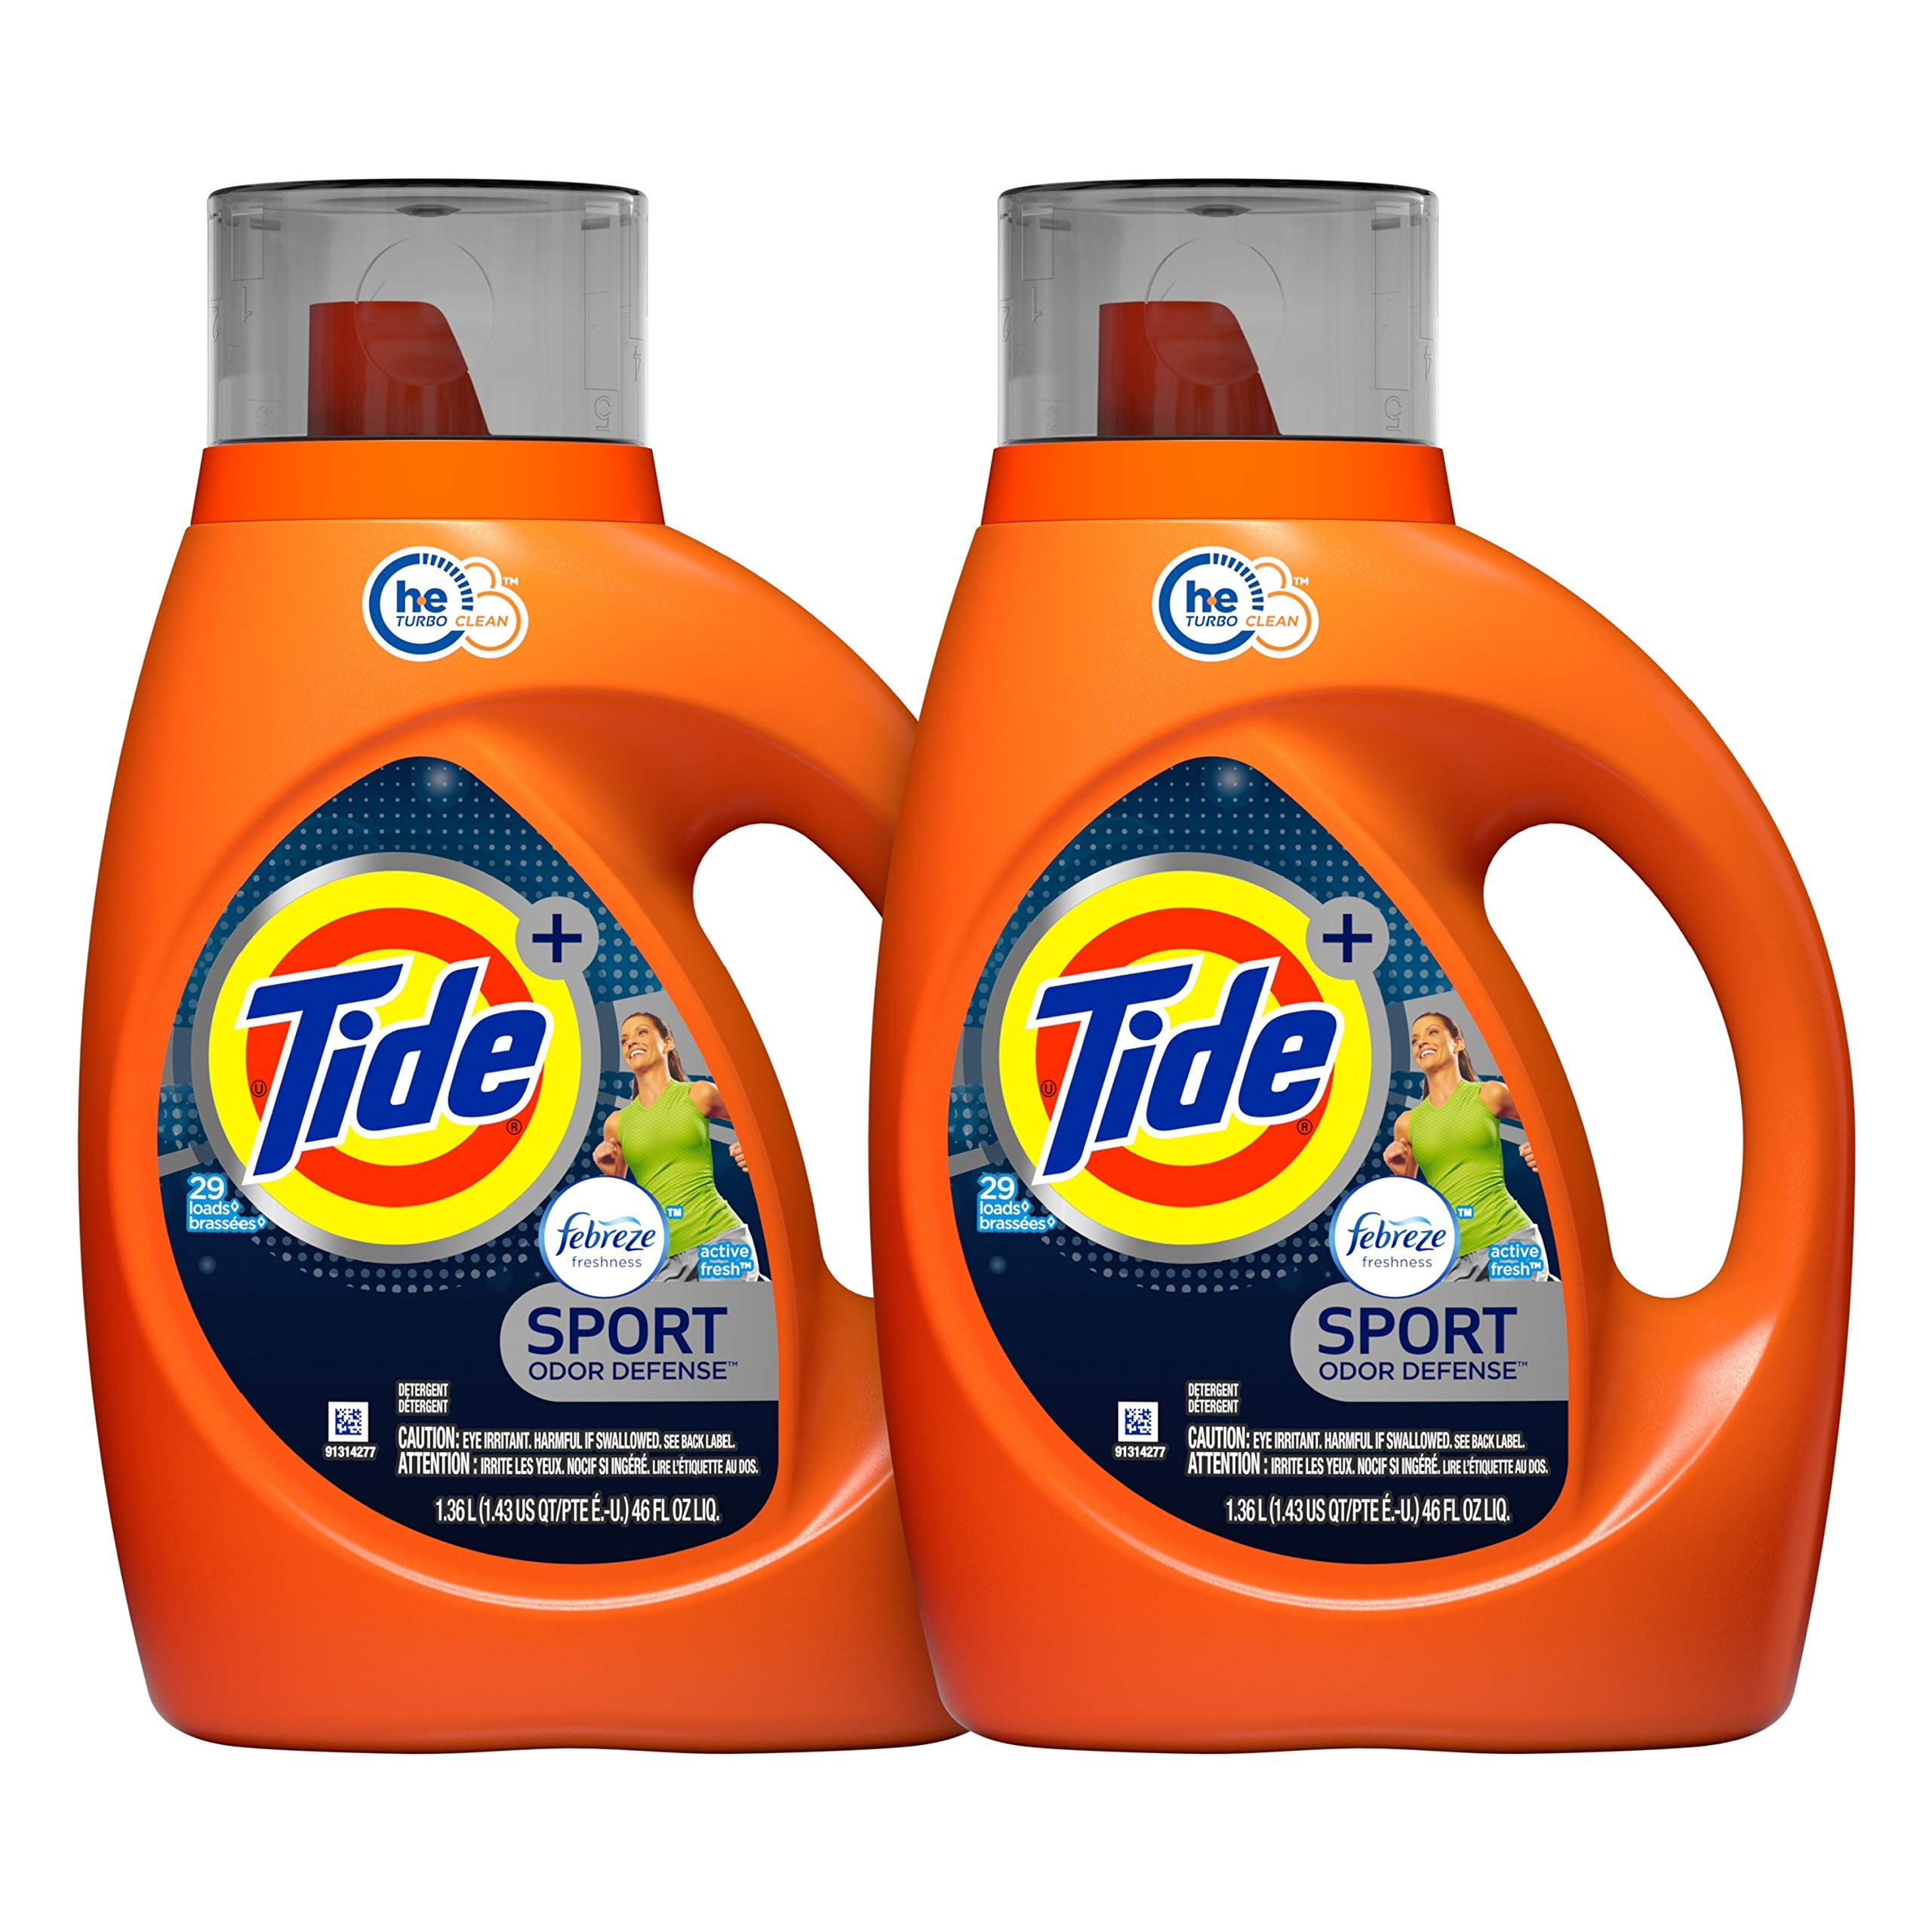 Tide Laundry Detergent Liquid Plus Febreze Sport Active Fresh Scent, HE Turbo Clean, 46 oz, 29 Loads - 2-pack (Packaging May Vary) by Tide